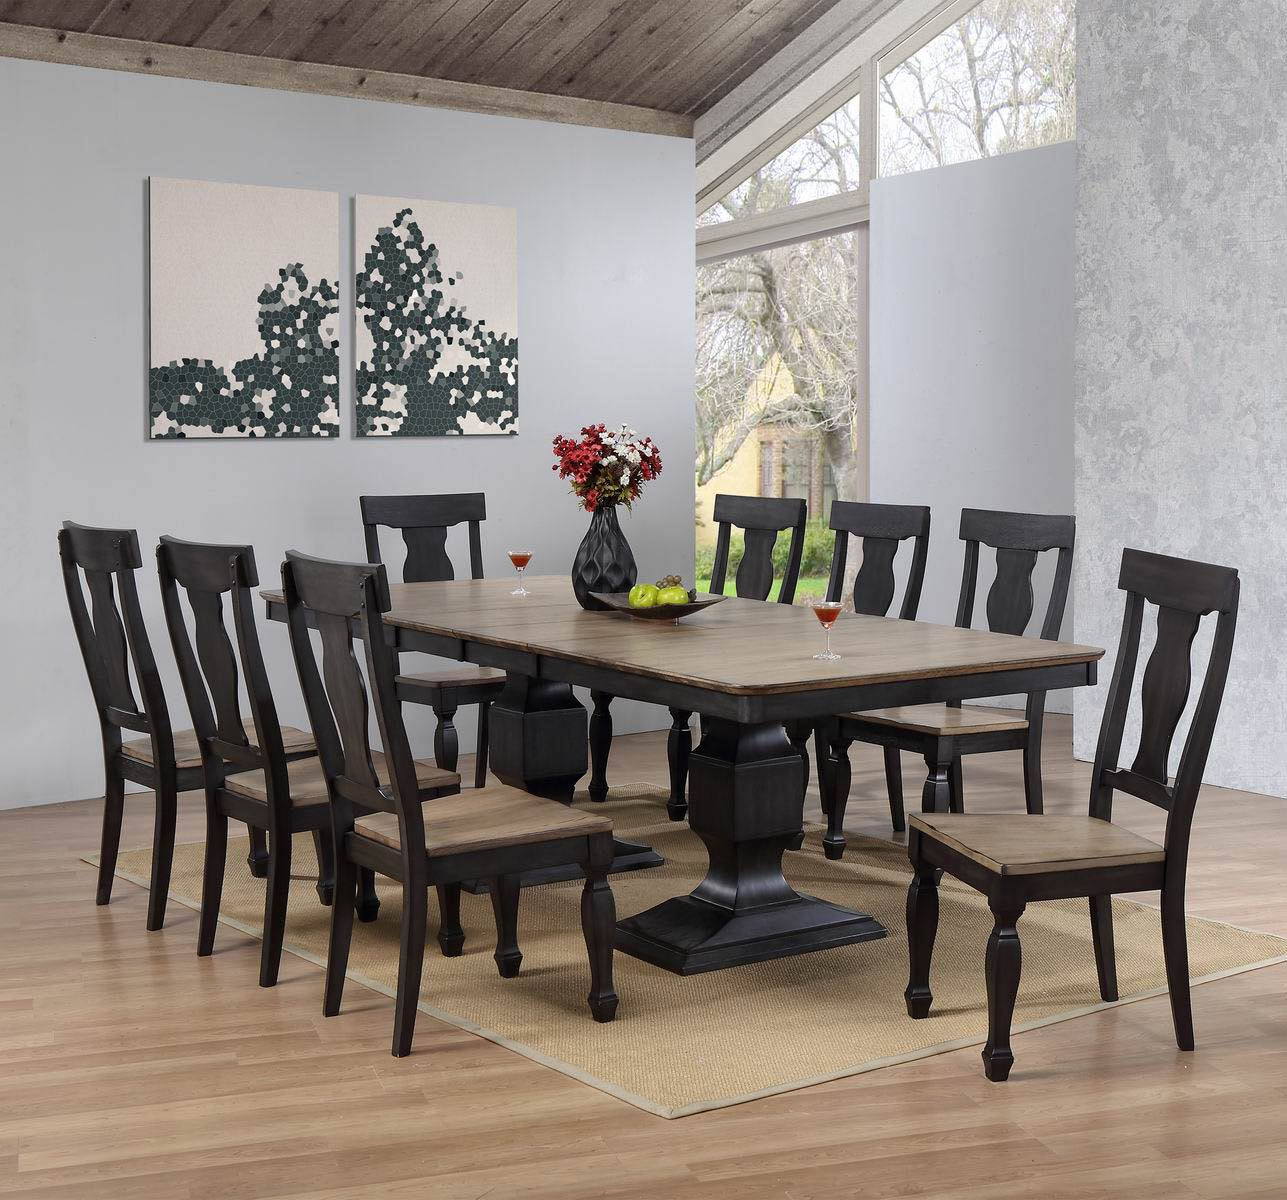 Kings Brand Alleyton 9 Piece Charcoal & Oak Wood Dining Room Set, Extendable Table & 8 Chairs